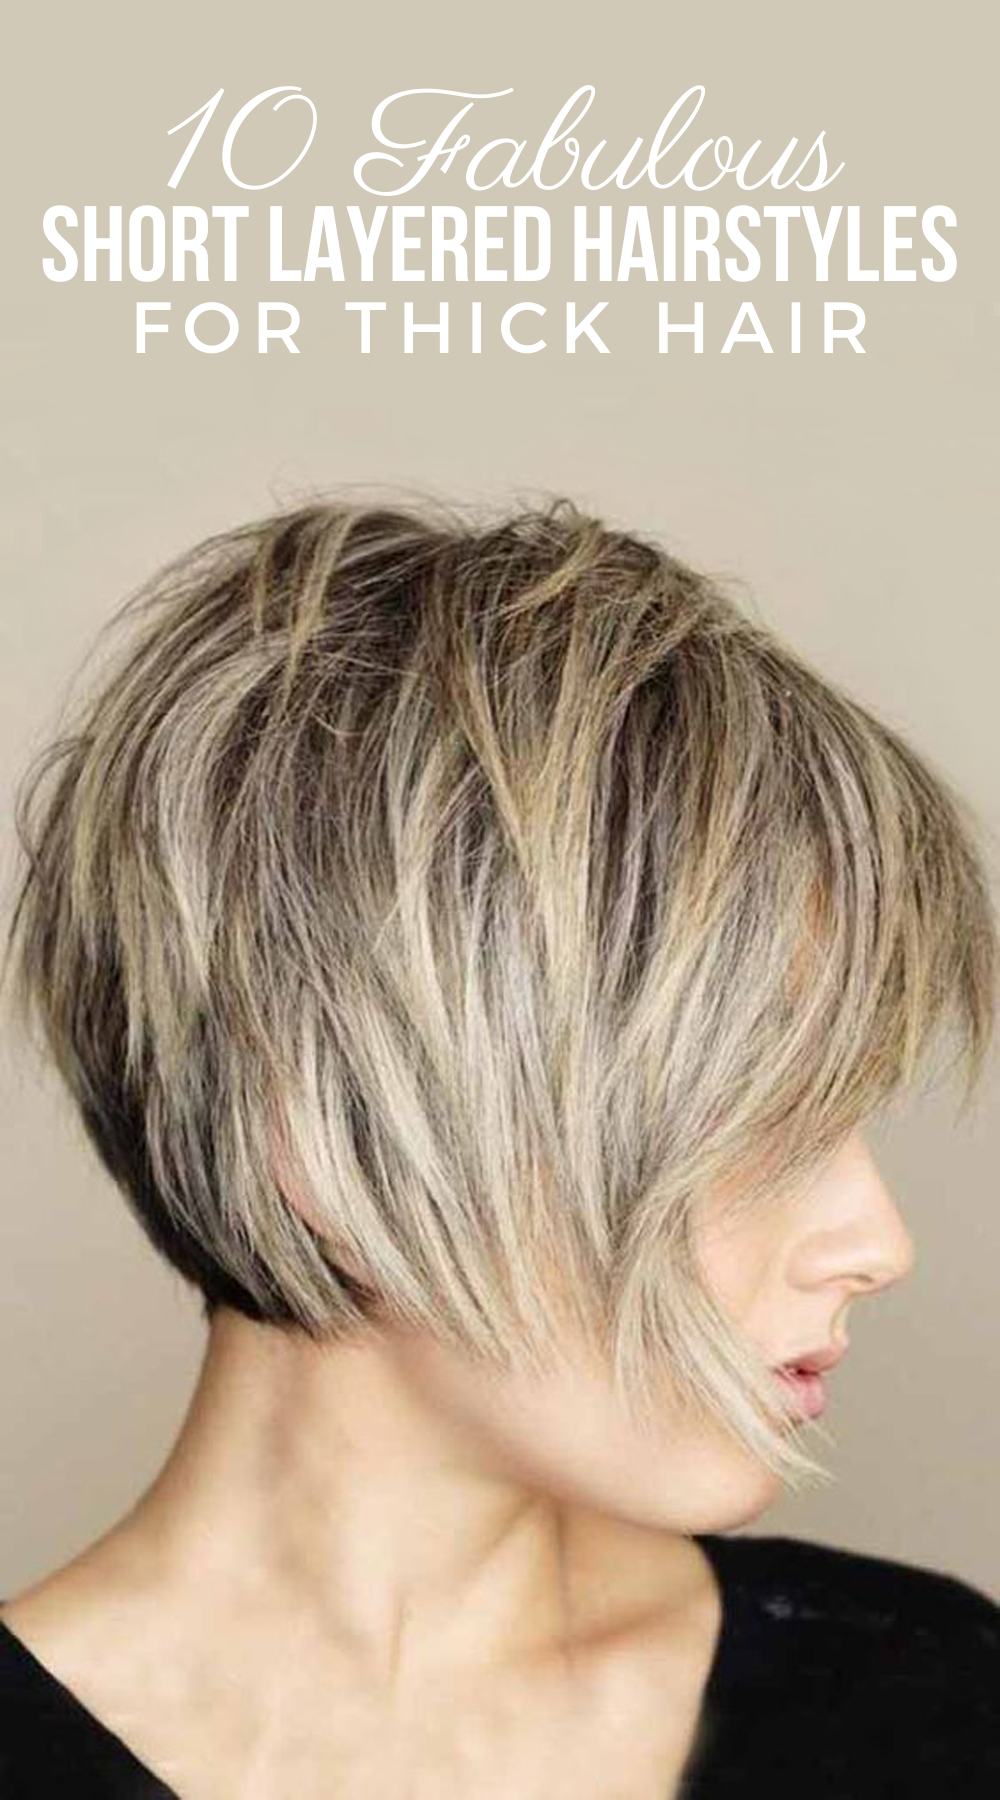 10 Cutest Short Layered Hairstyles For Your Thick Hair You Should Apply Thick Hair Styles Short Hair With Layers Bobs For Thin Hair